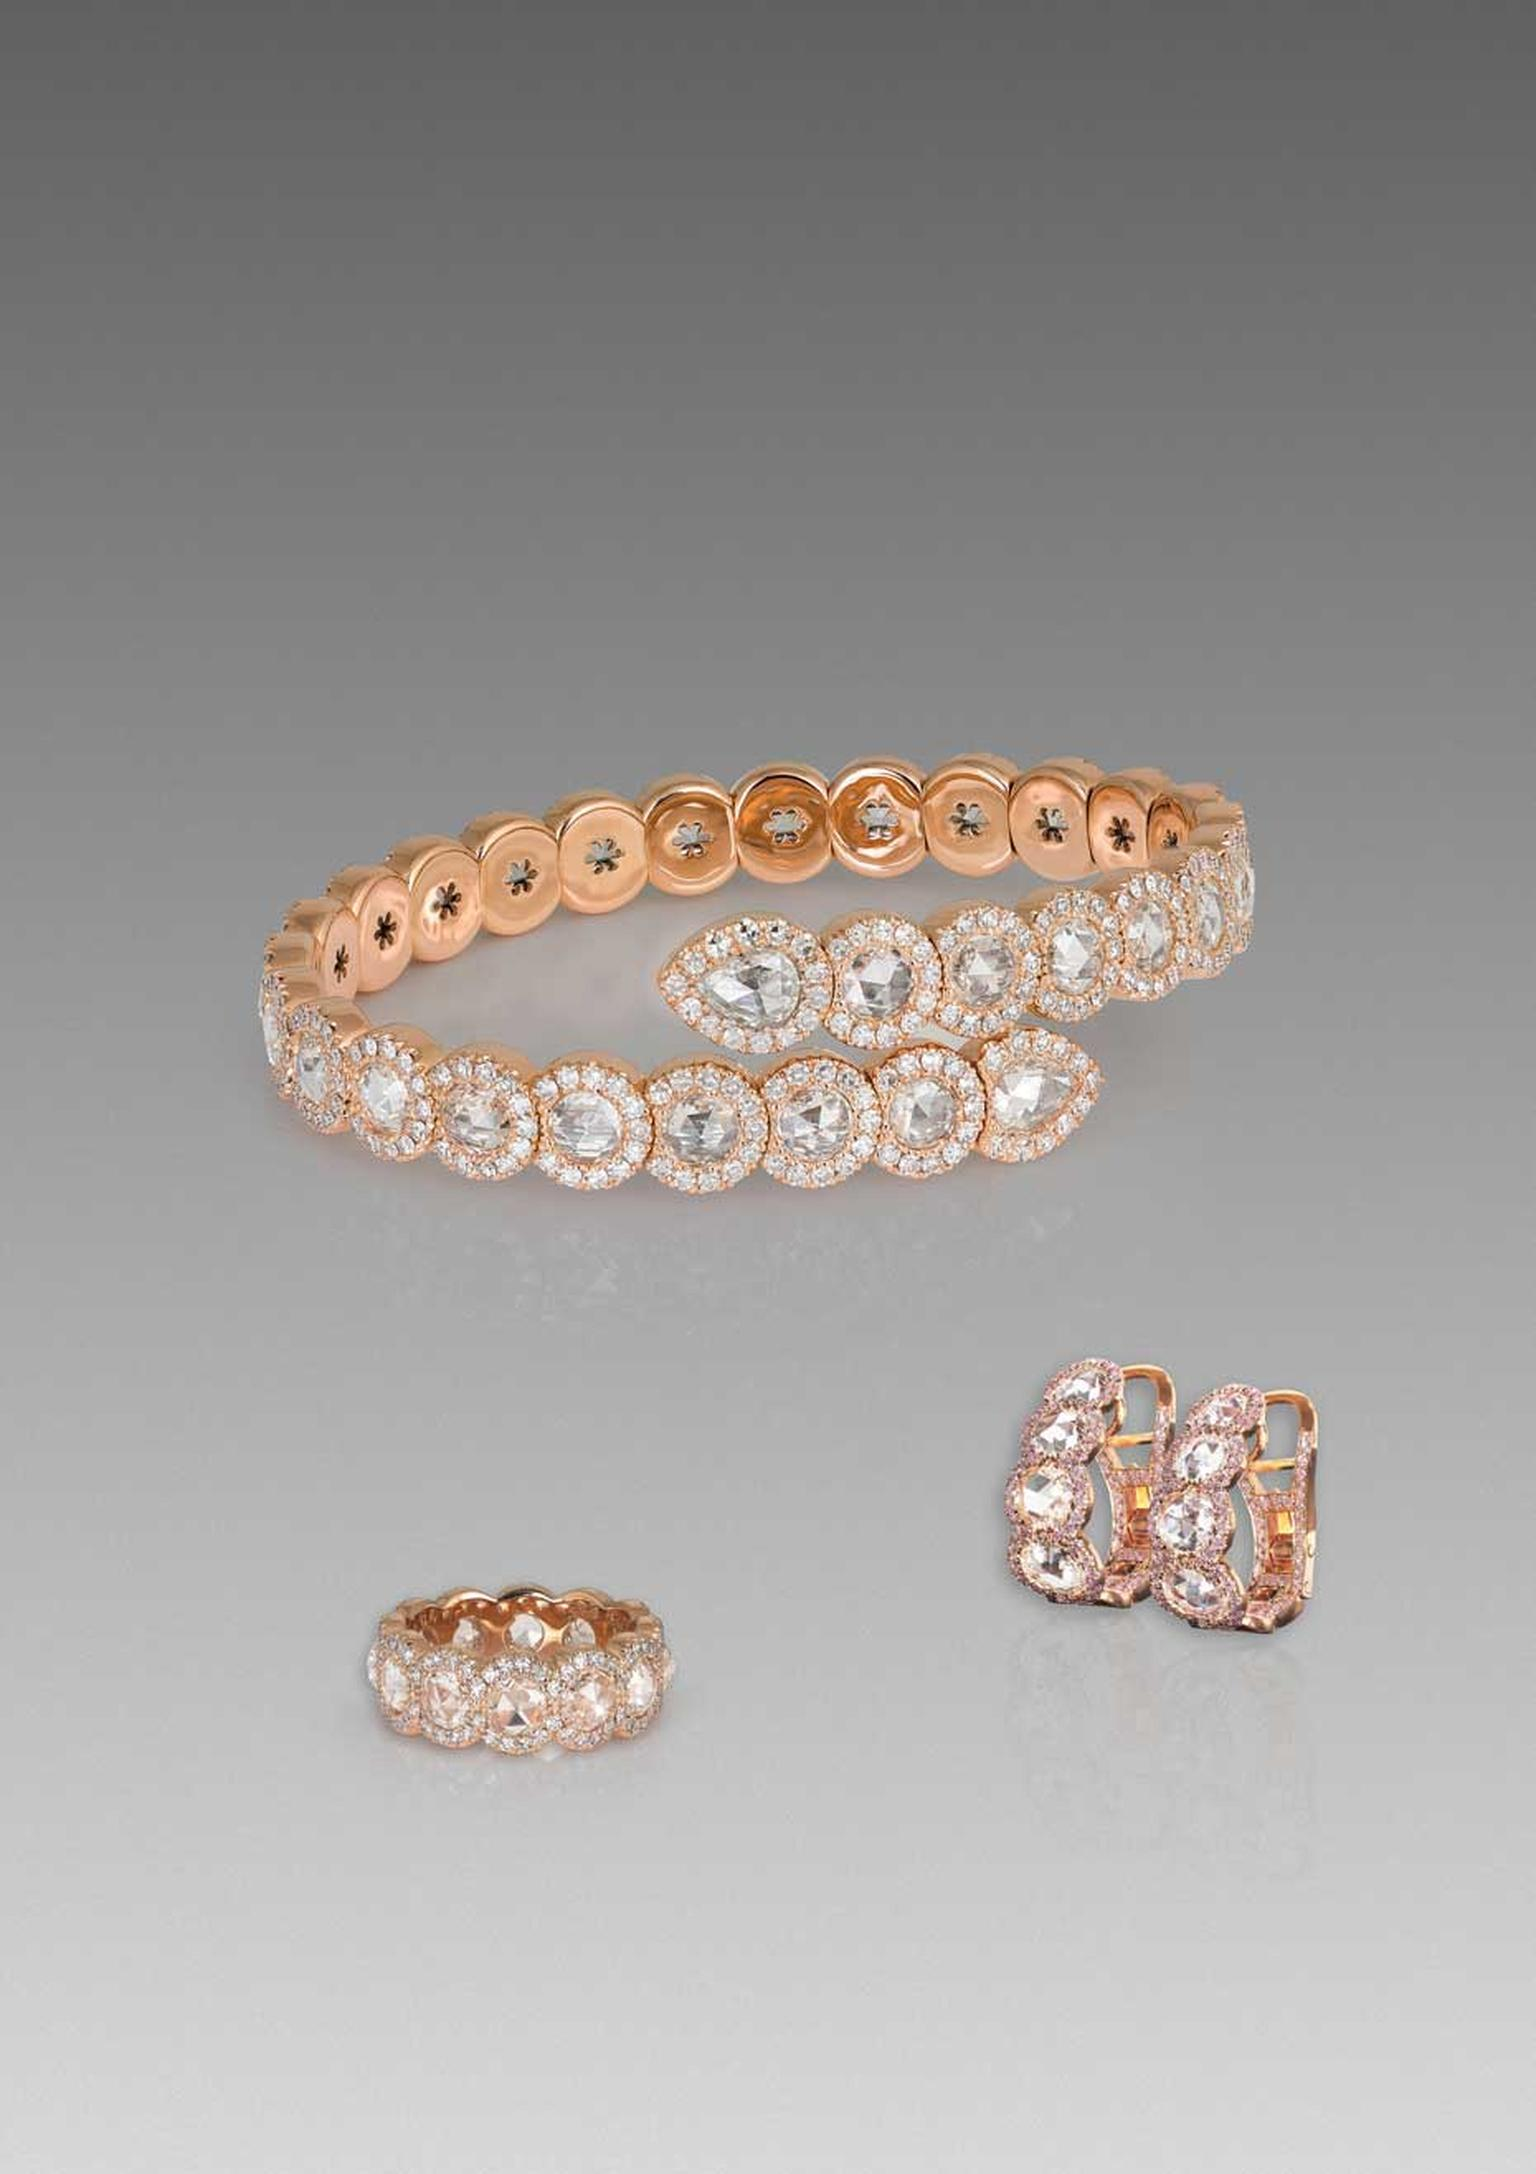 David Morris Rose-Cut collection sprung bangle, three-row eternity band and diamond hoop earrings with rose-cut diamonds, all set in rose gold.